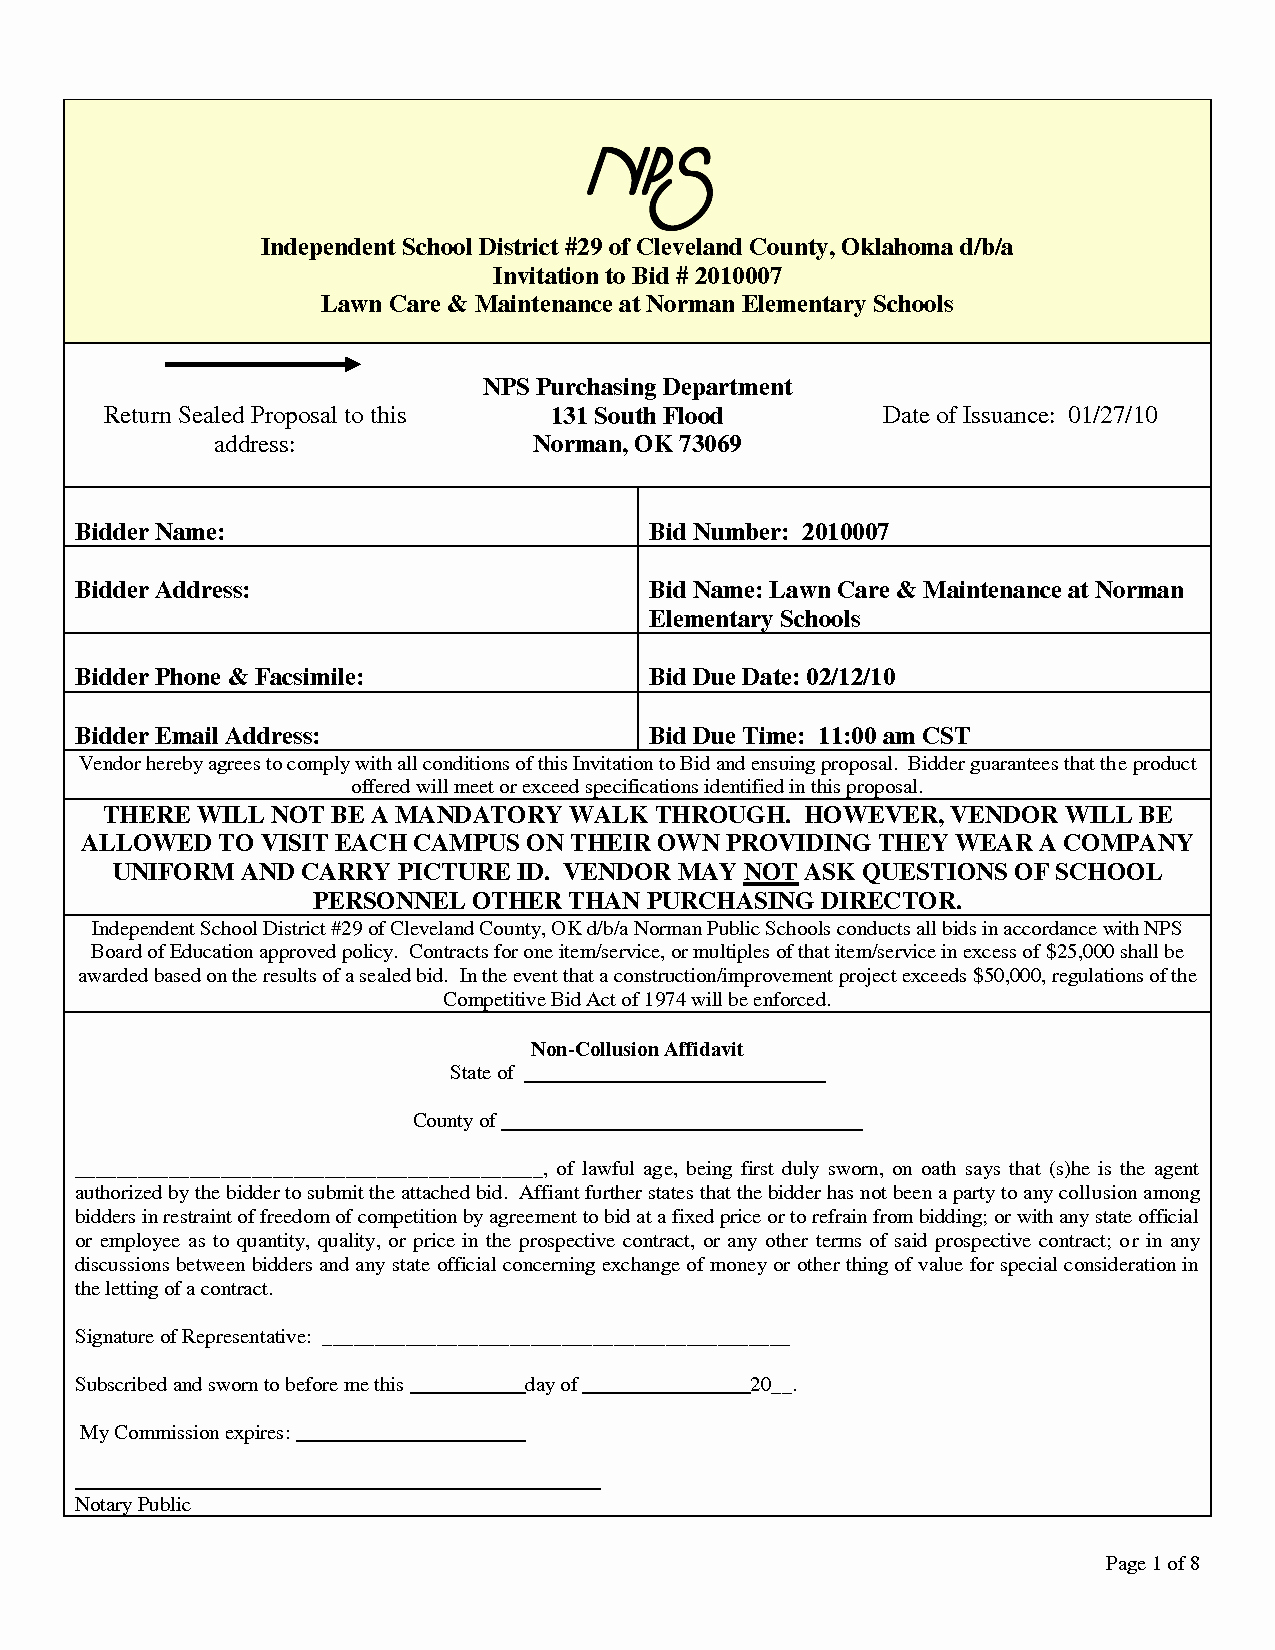 10 Best Of Service Proposal forms Lawn Care